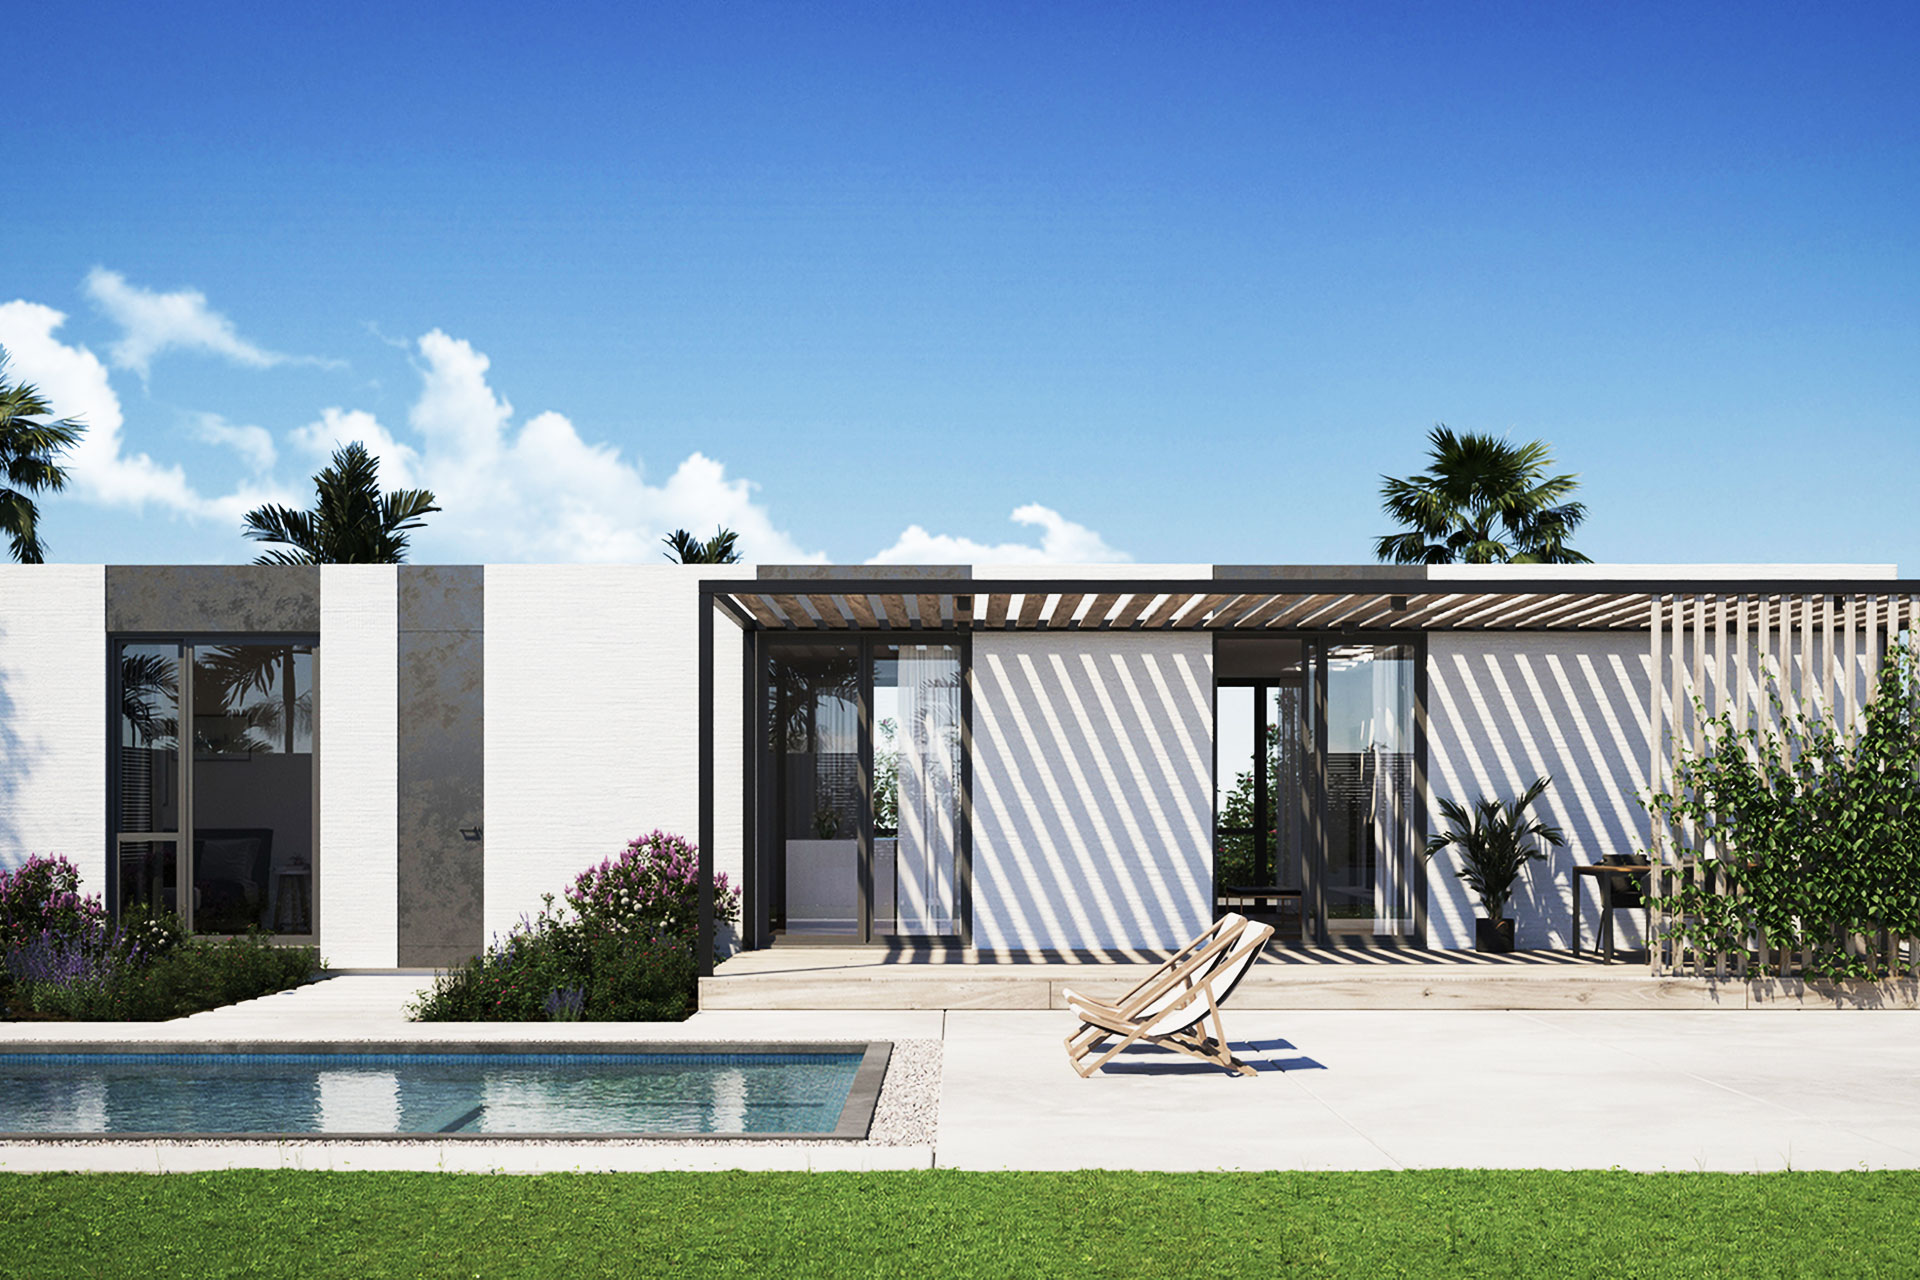 Rancho Mirage 3D printed home